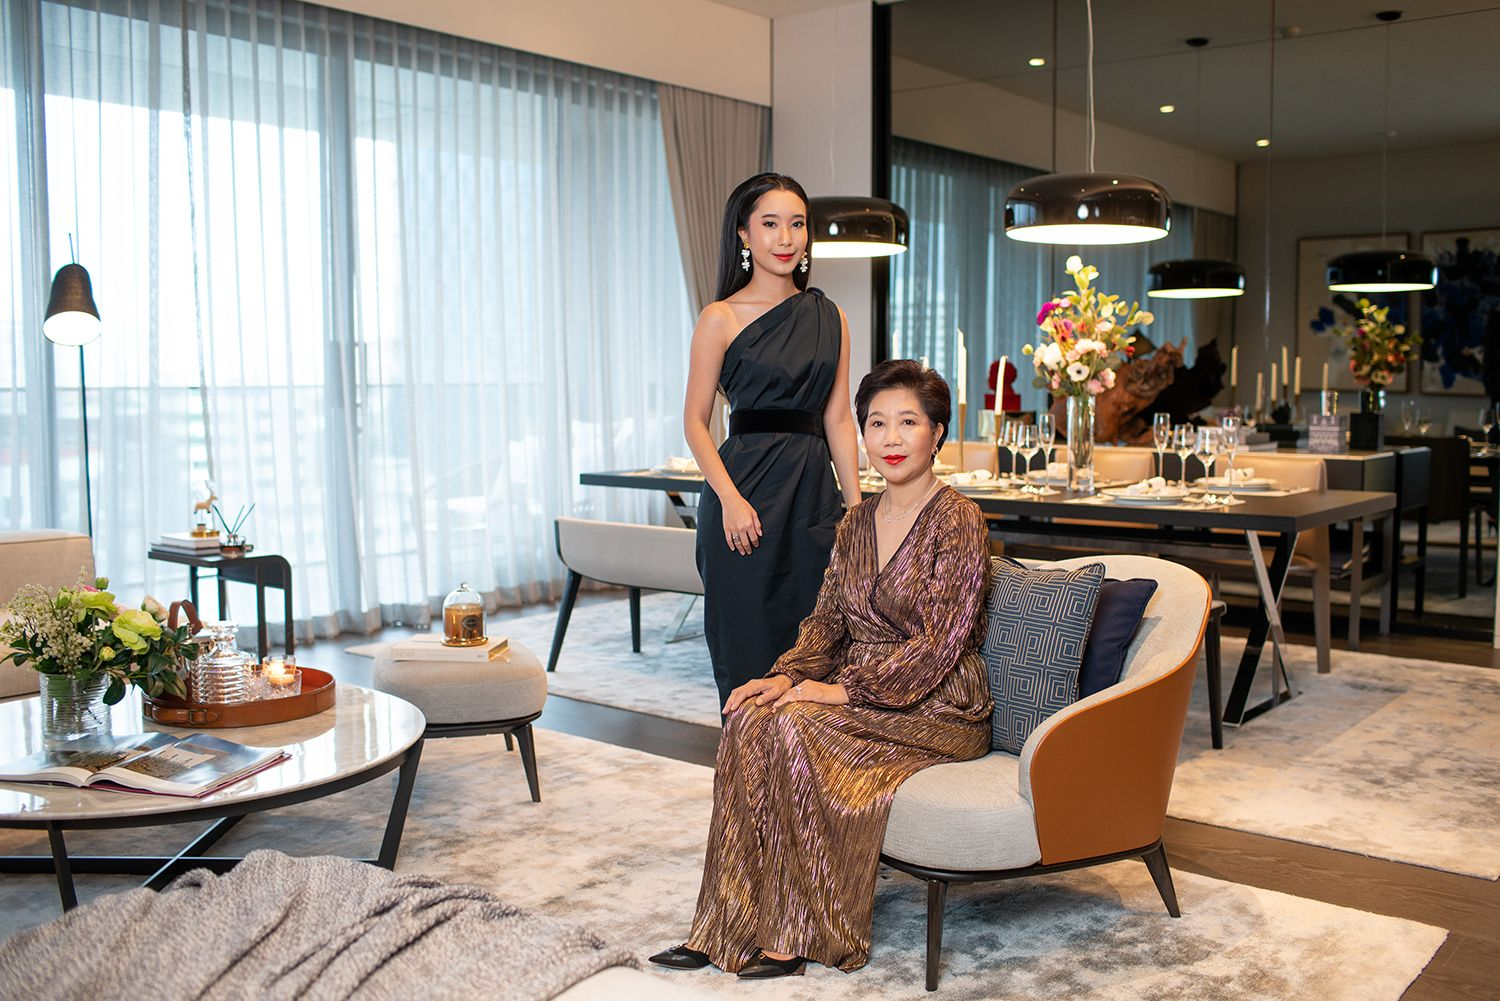 TELA Thonglor, A Condominium For The Ages For Montira and Fasai Temboonkiat